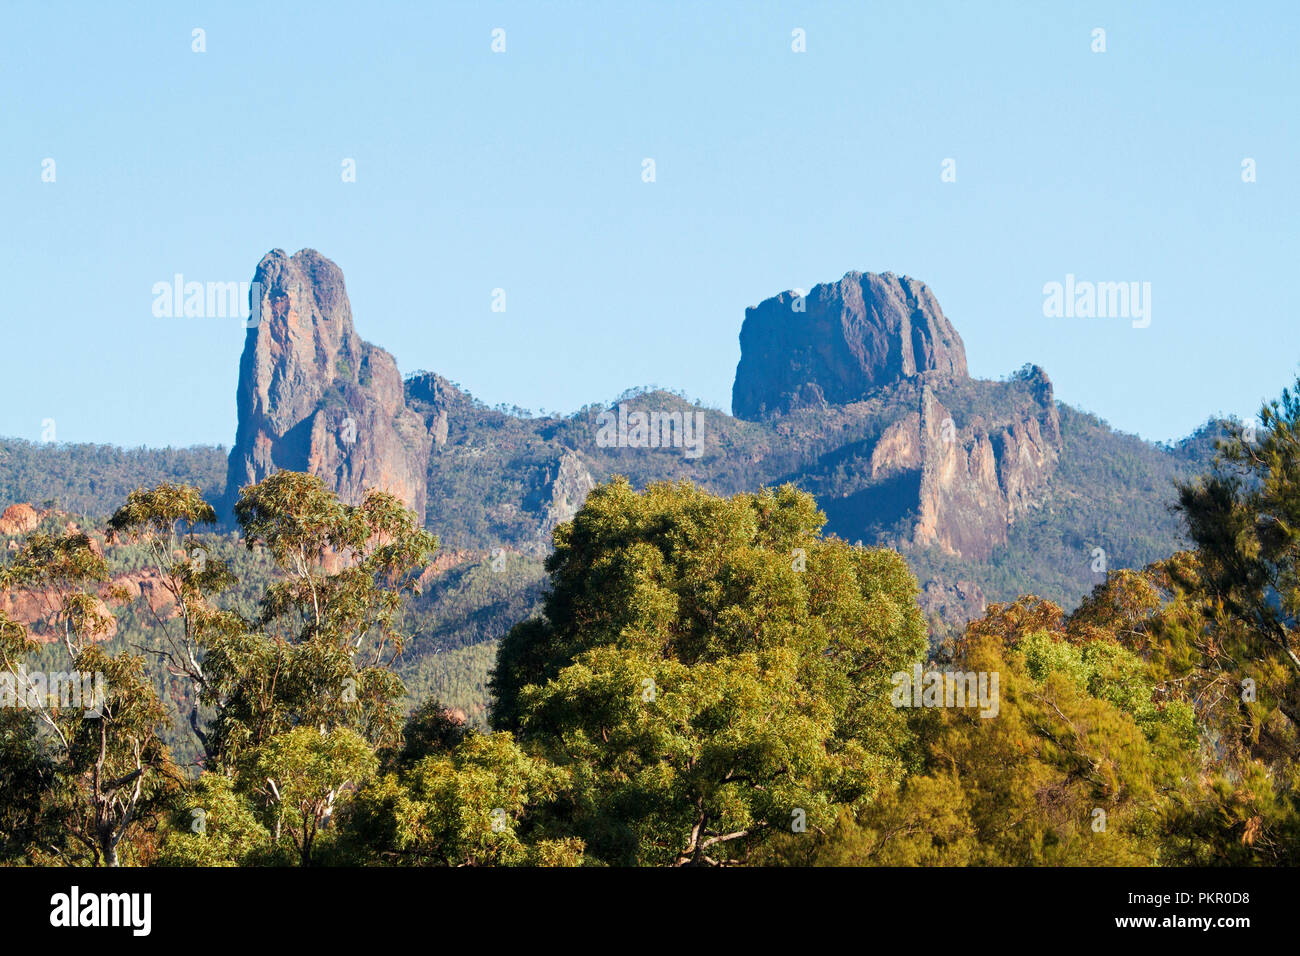 Jagged rocky outcrops rising above forested ranges into blue sky in Warrumbungle National Park NSW Australia - Stock Image